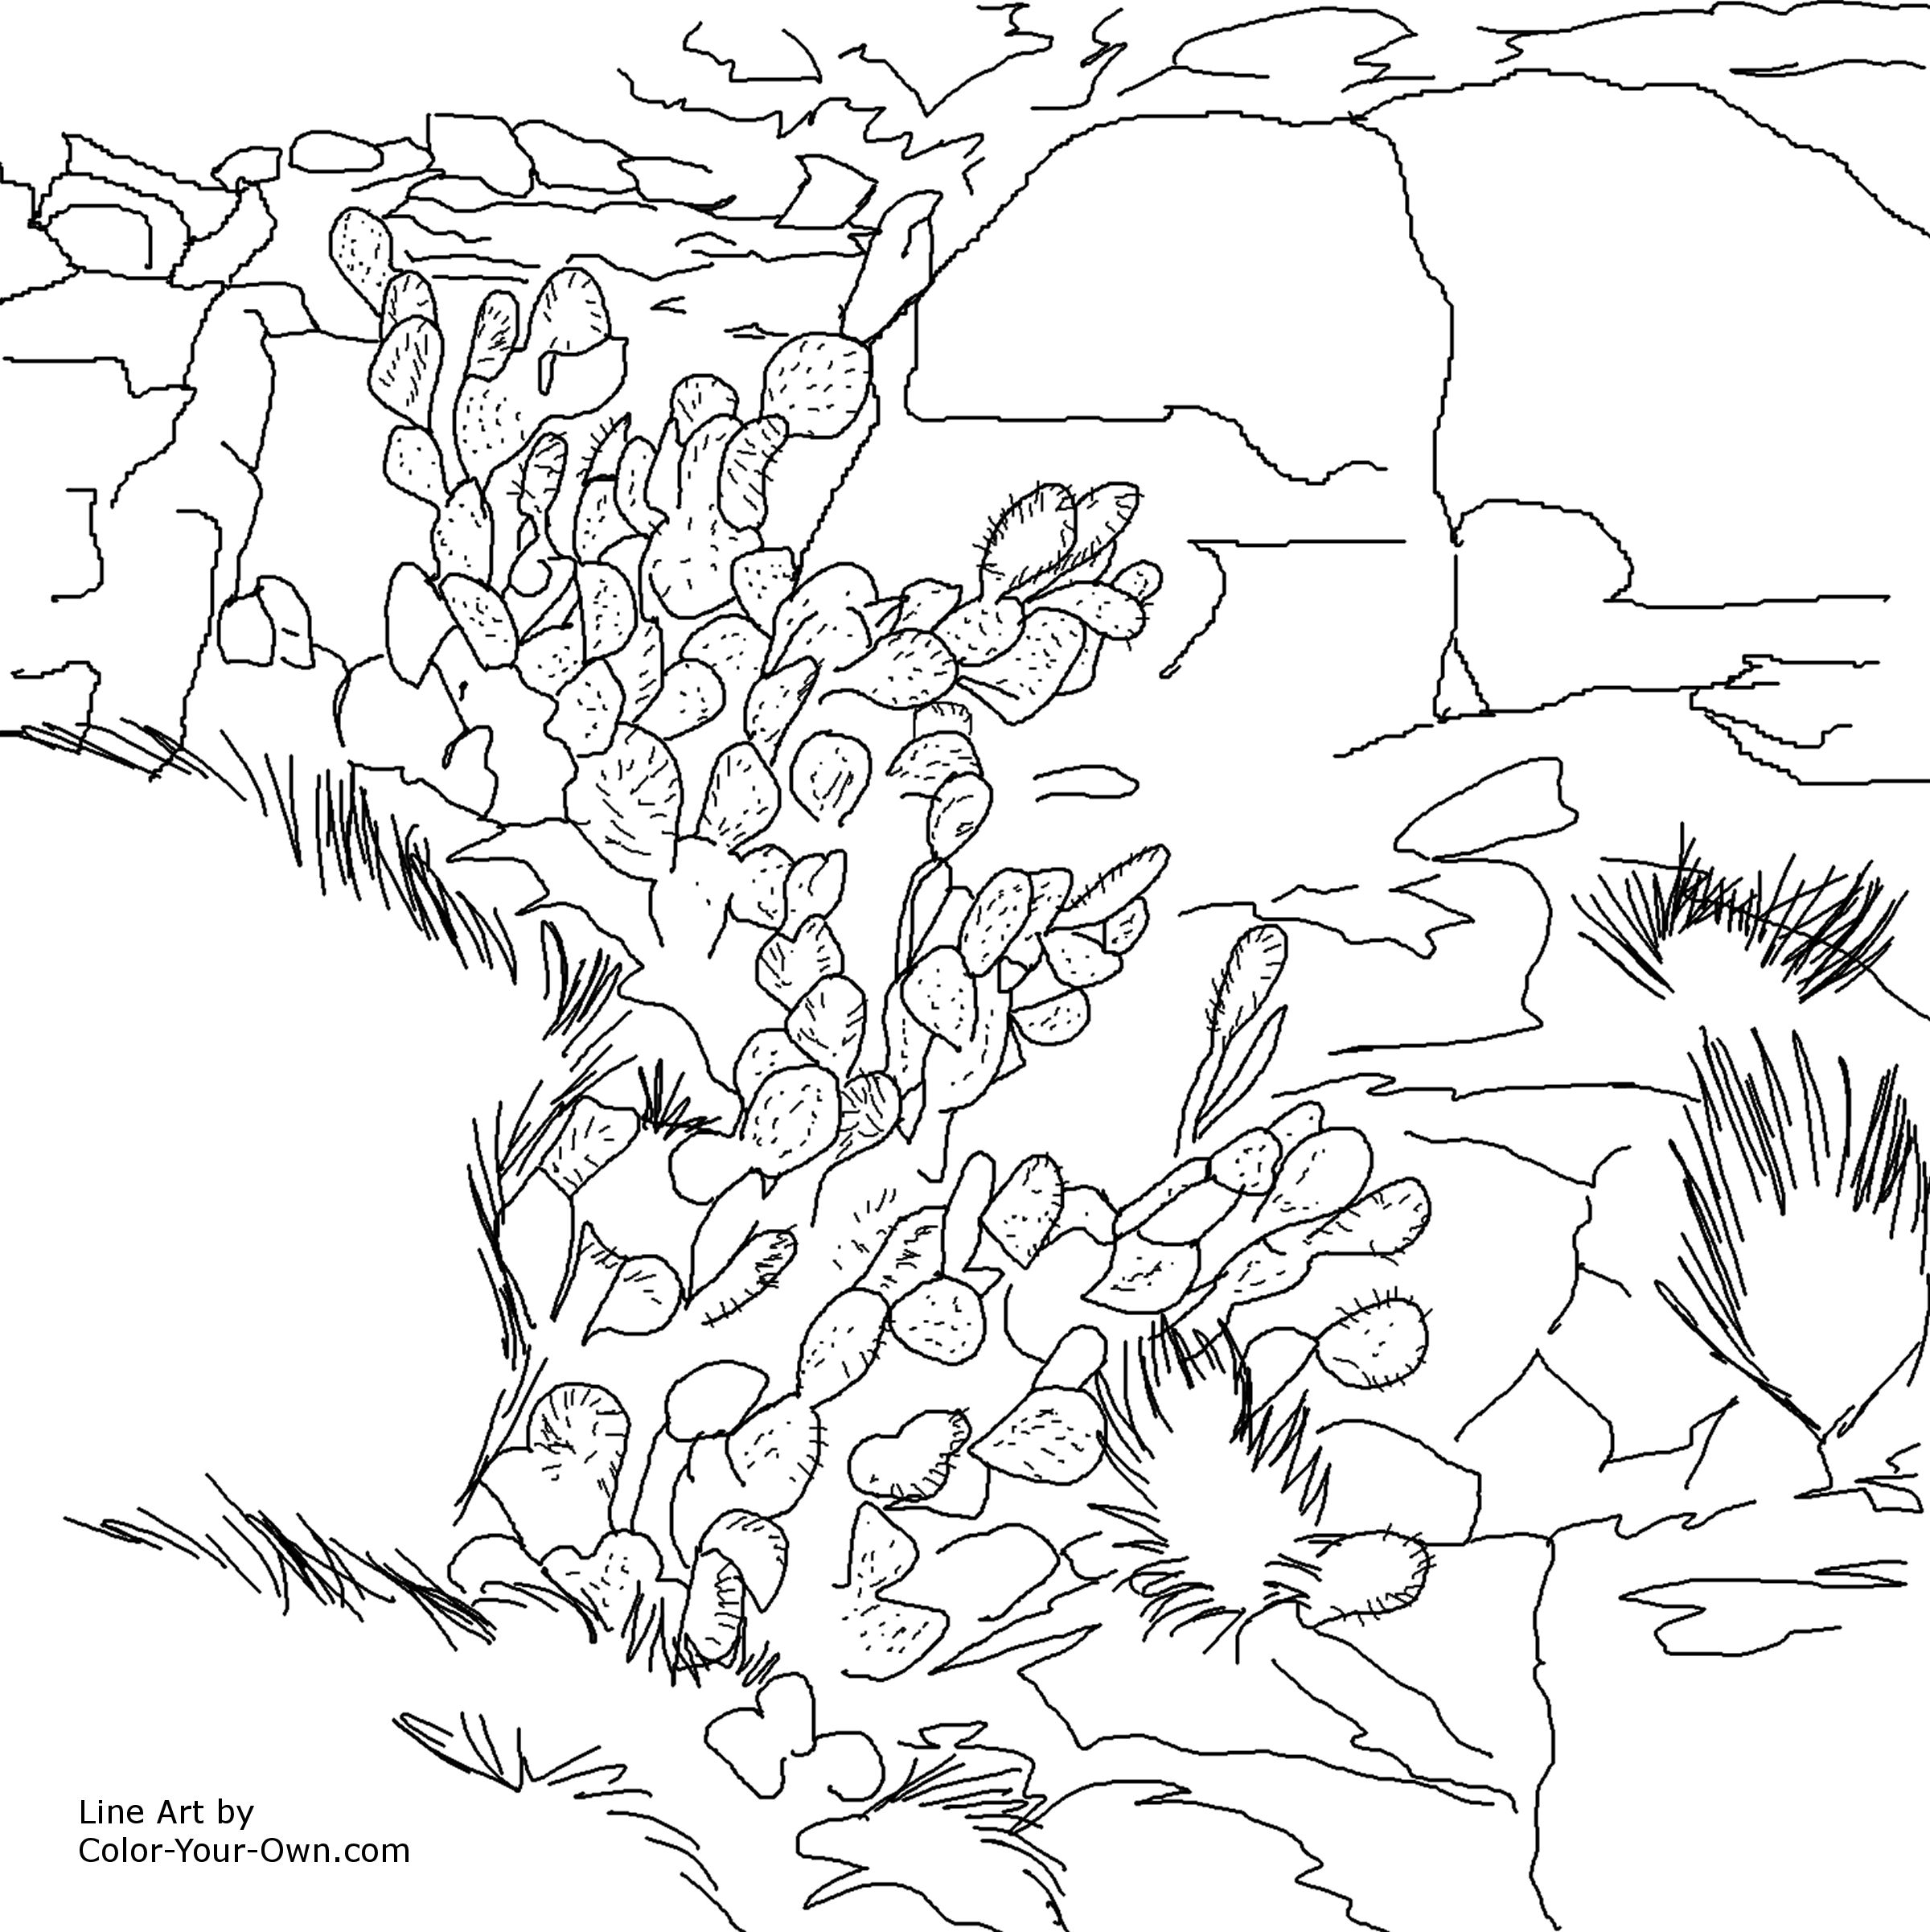 rock coloring pages rock coloring pages to download and print for free coloring rock pages 1 1